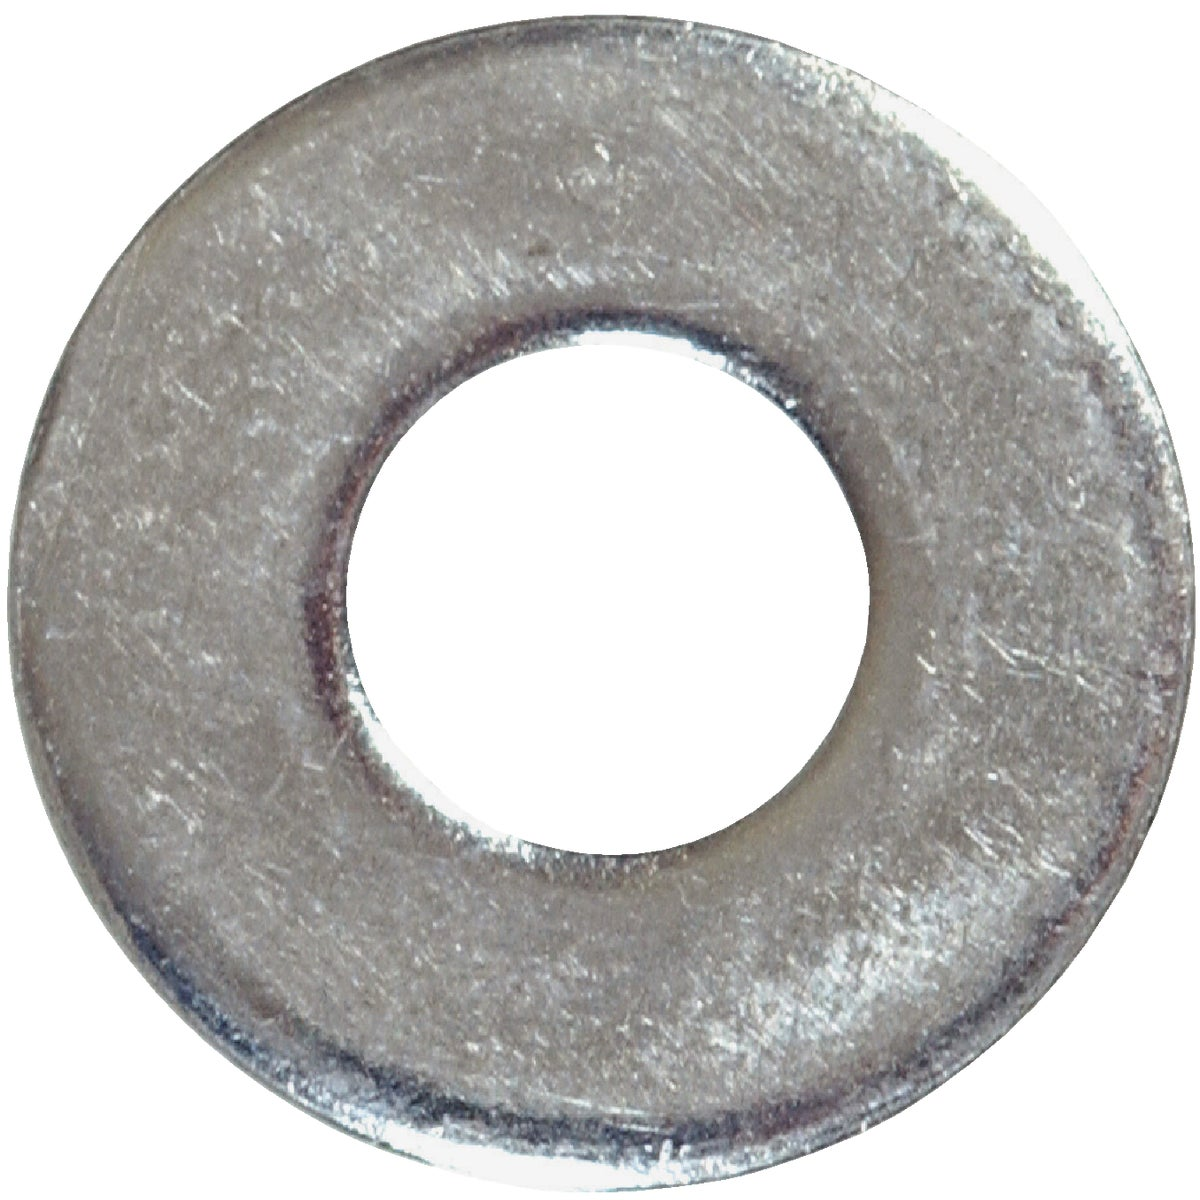 "100PC 3/8""USS FLT WASHER - 270061 by Hillman Fastener"